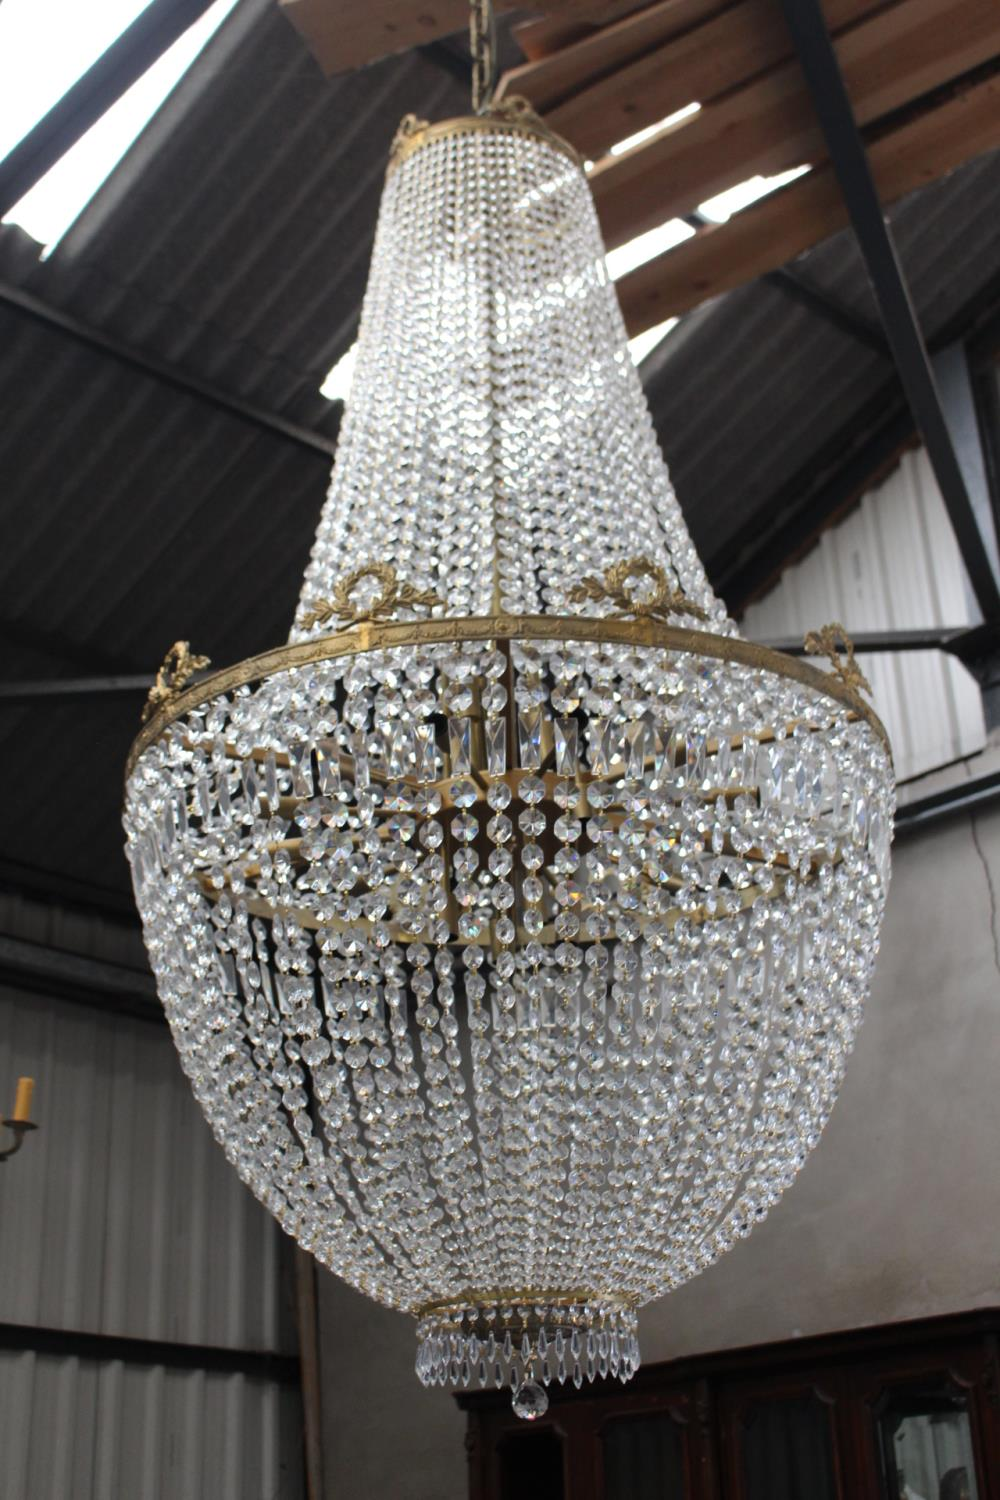 Bronze and glass dome shaped chandelier